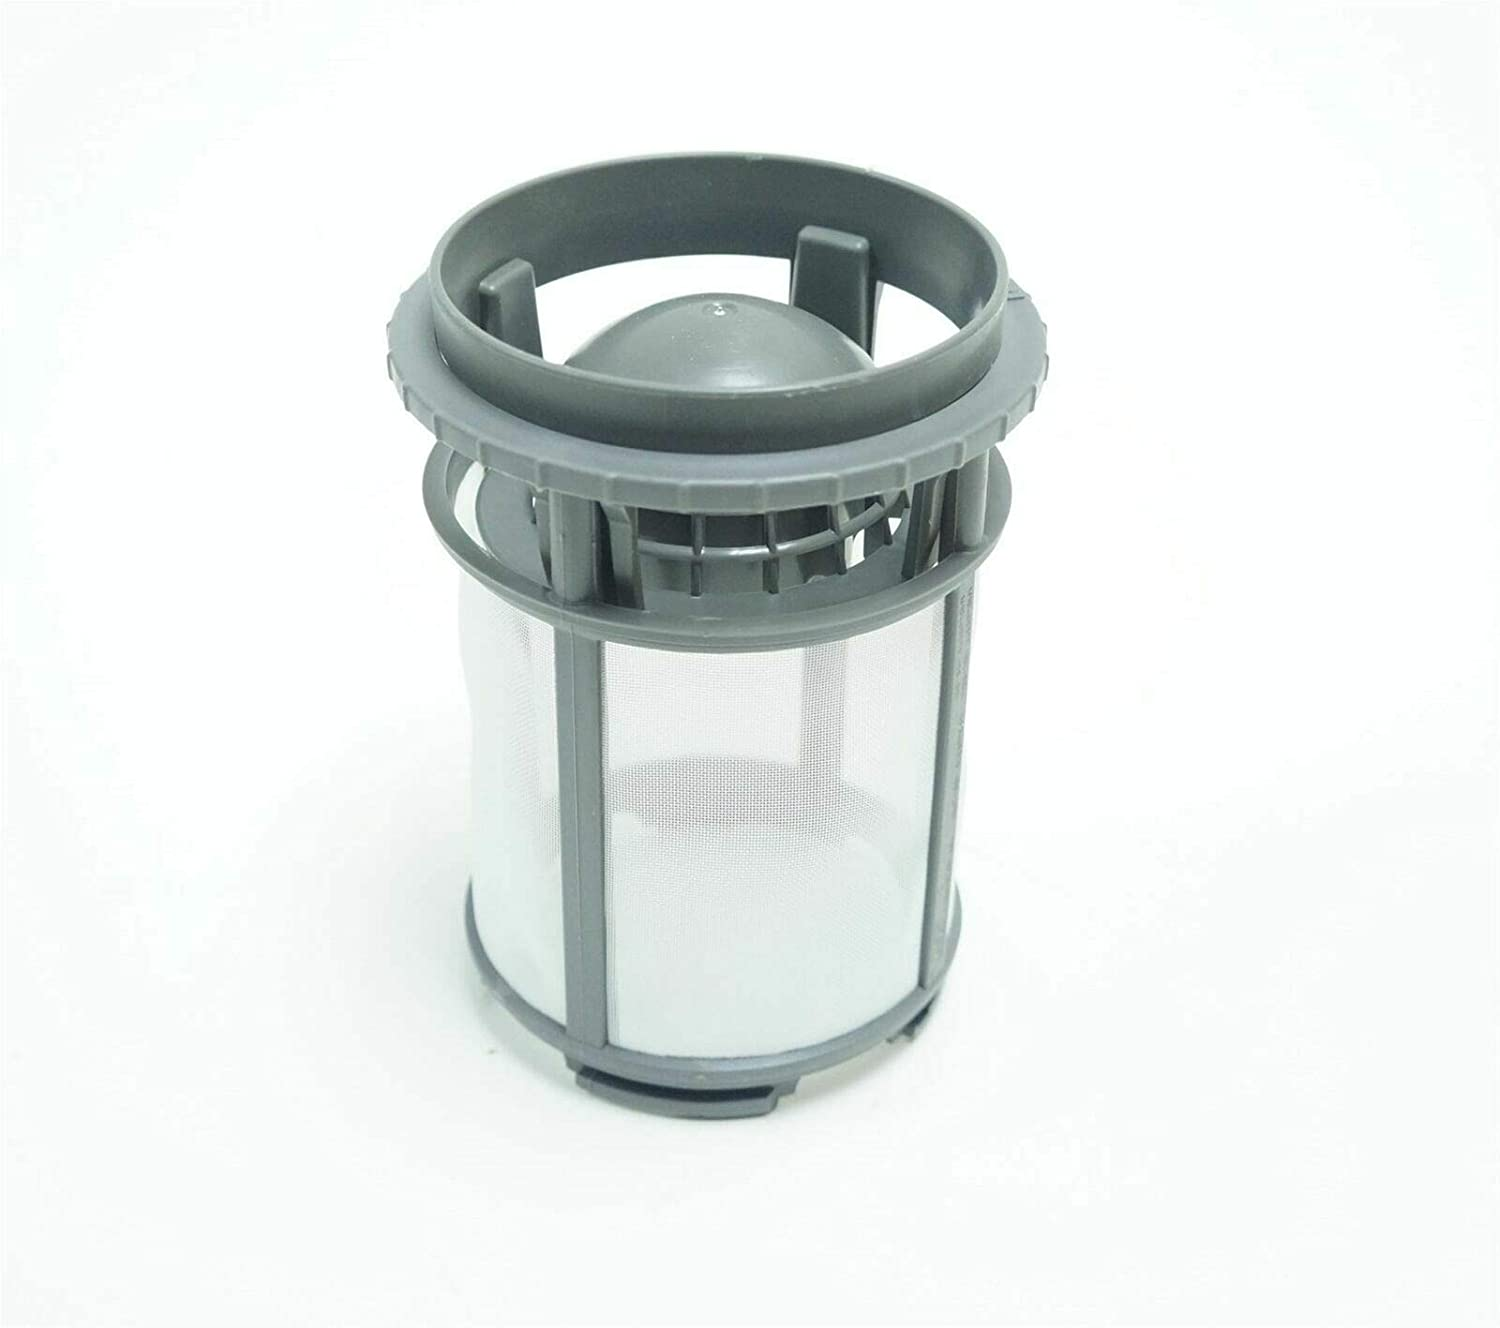 Filter fits for Whirlpool Dishwasher W10872845 WPW10693534